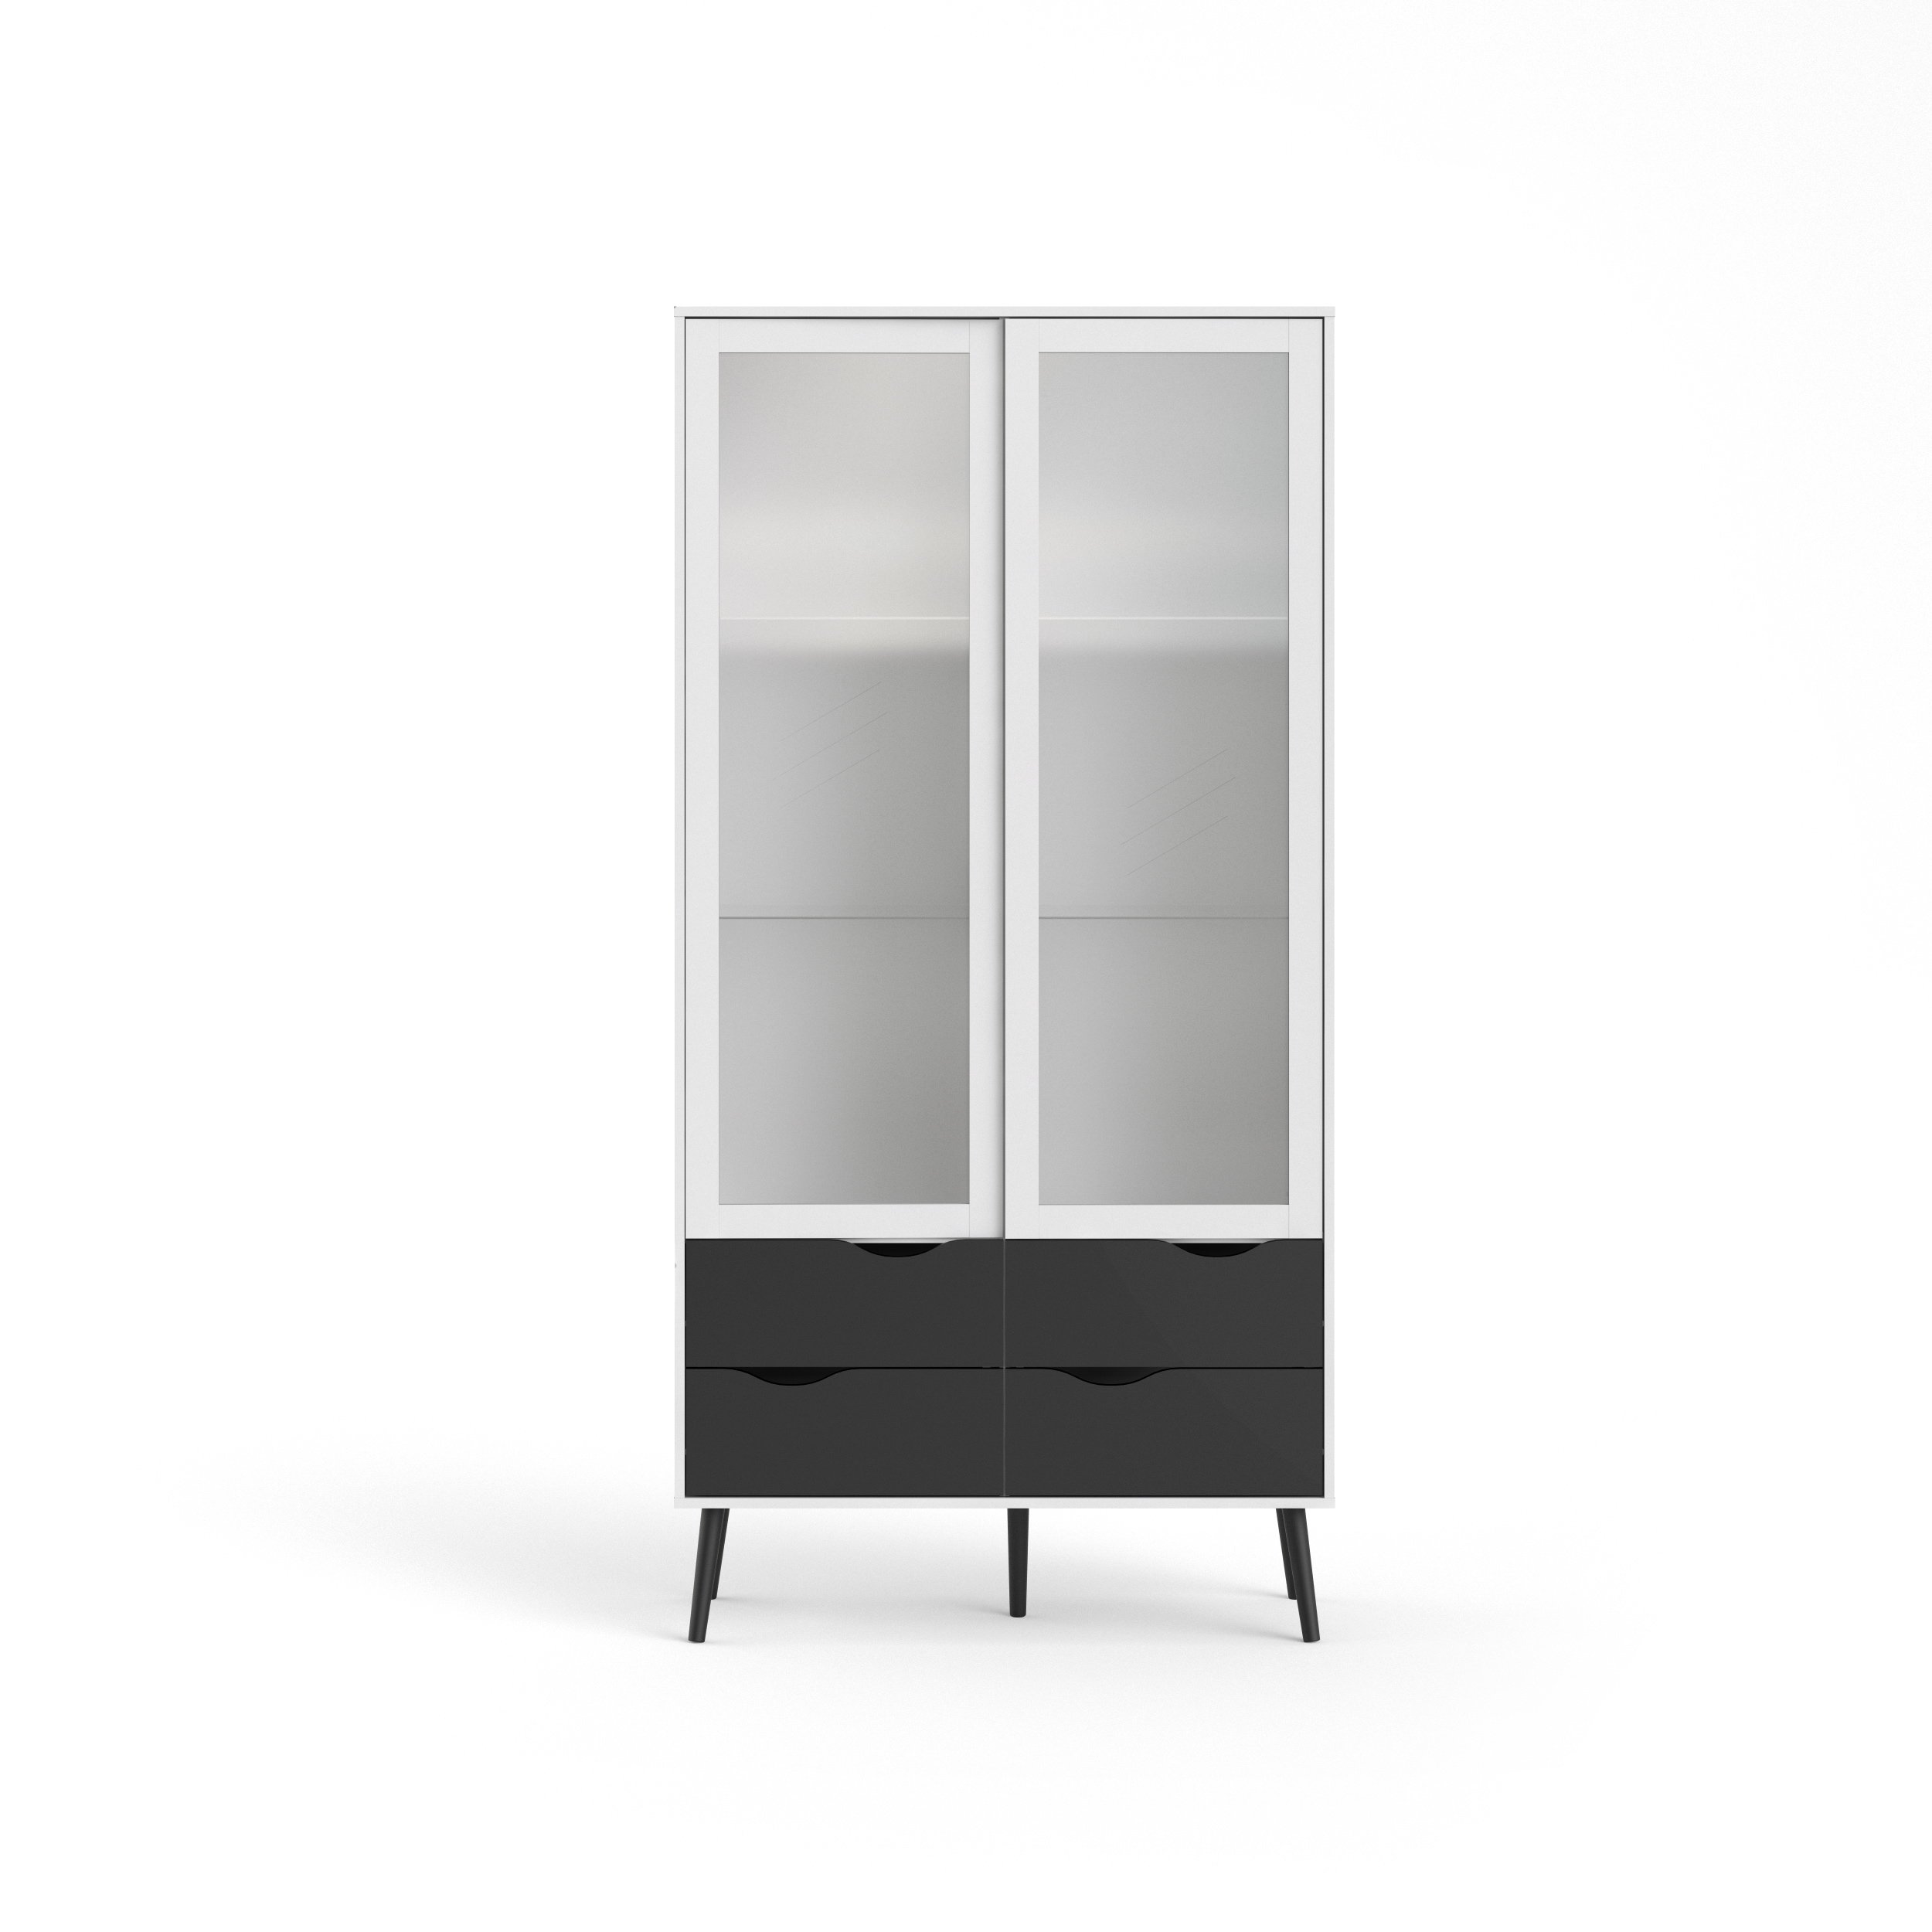 Tvilum 7546249gm Diana 4 Drawer and and 2 Door Glass China Cabinet, White/Black Matte by Tvilum